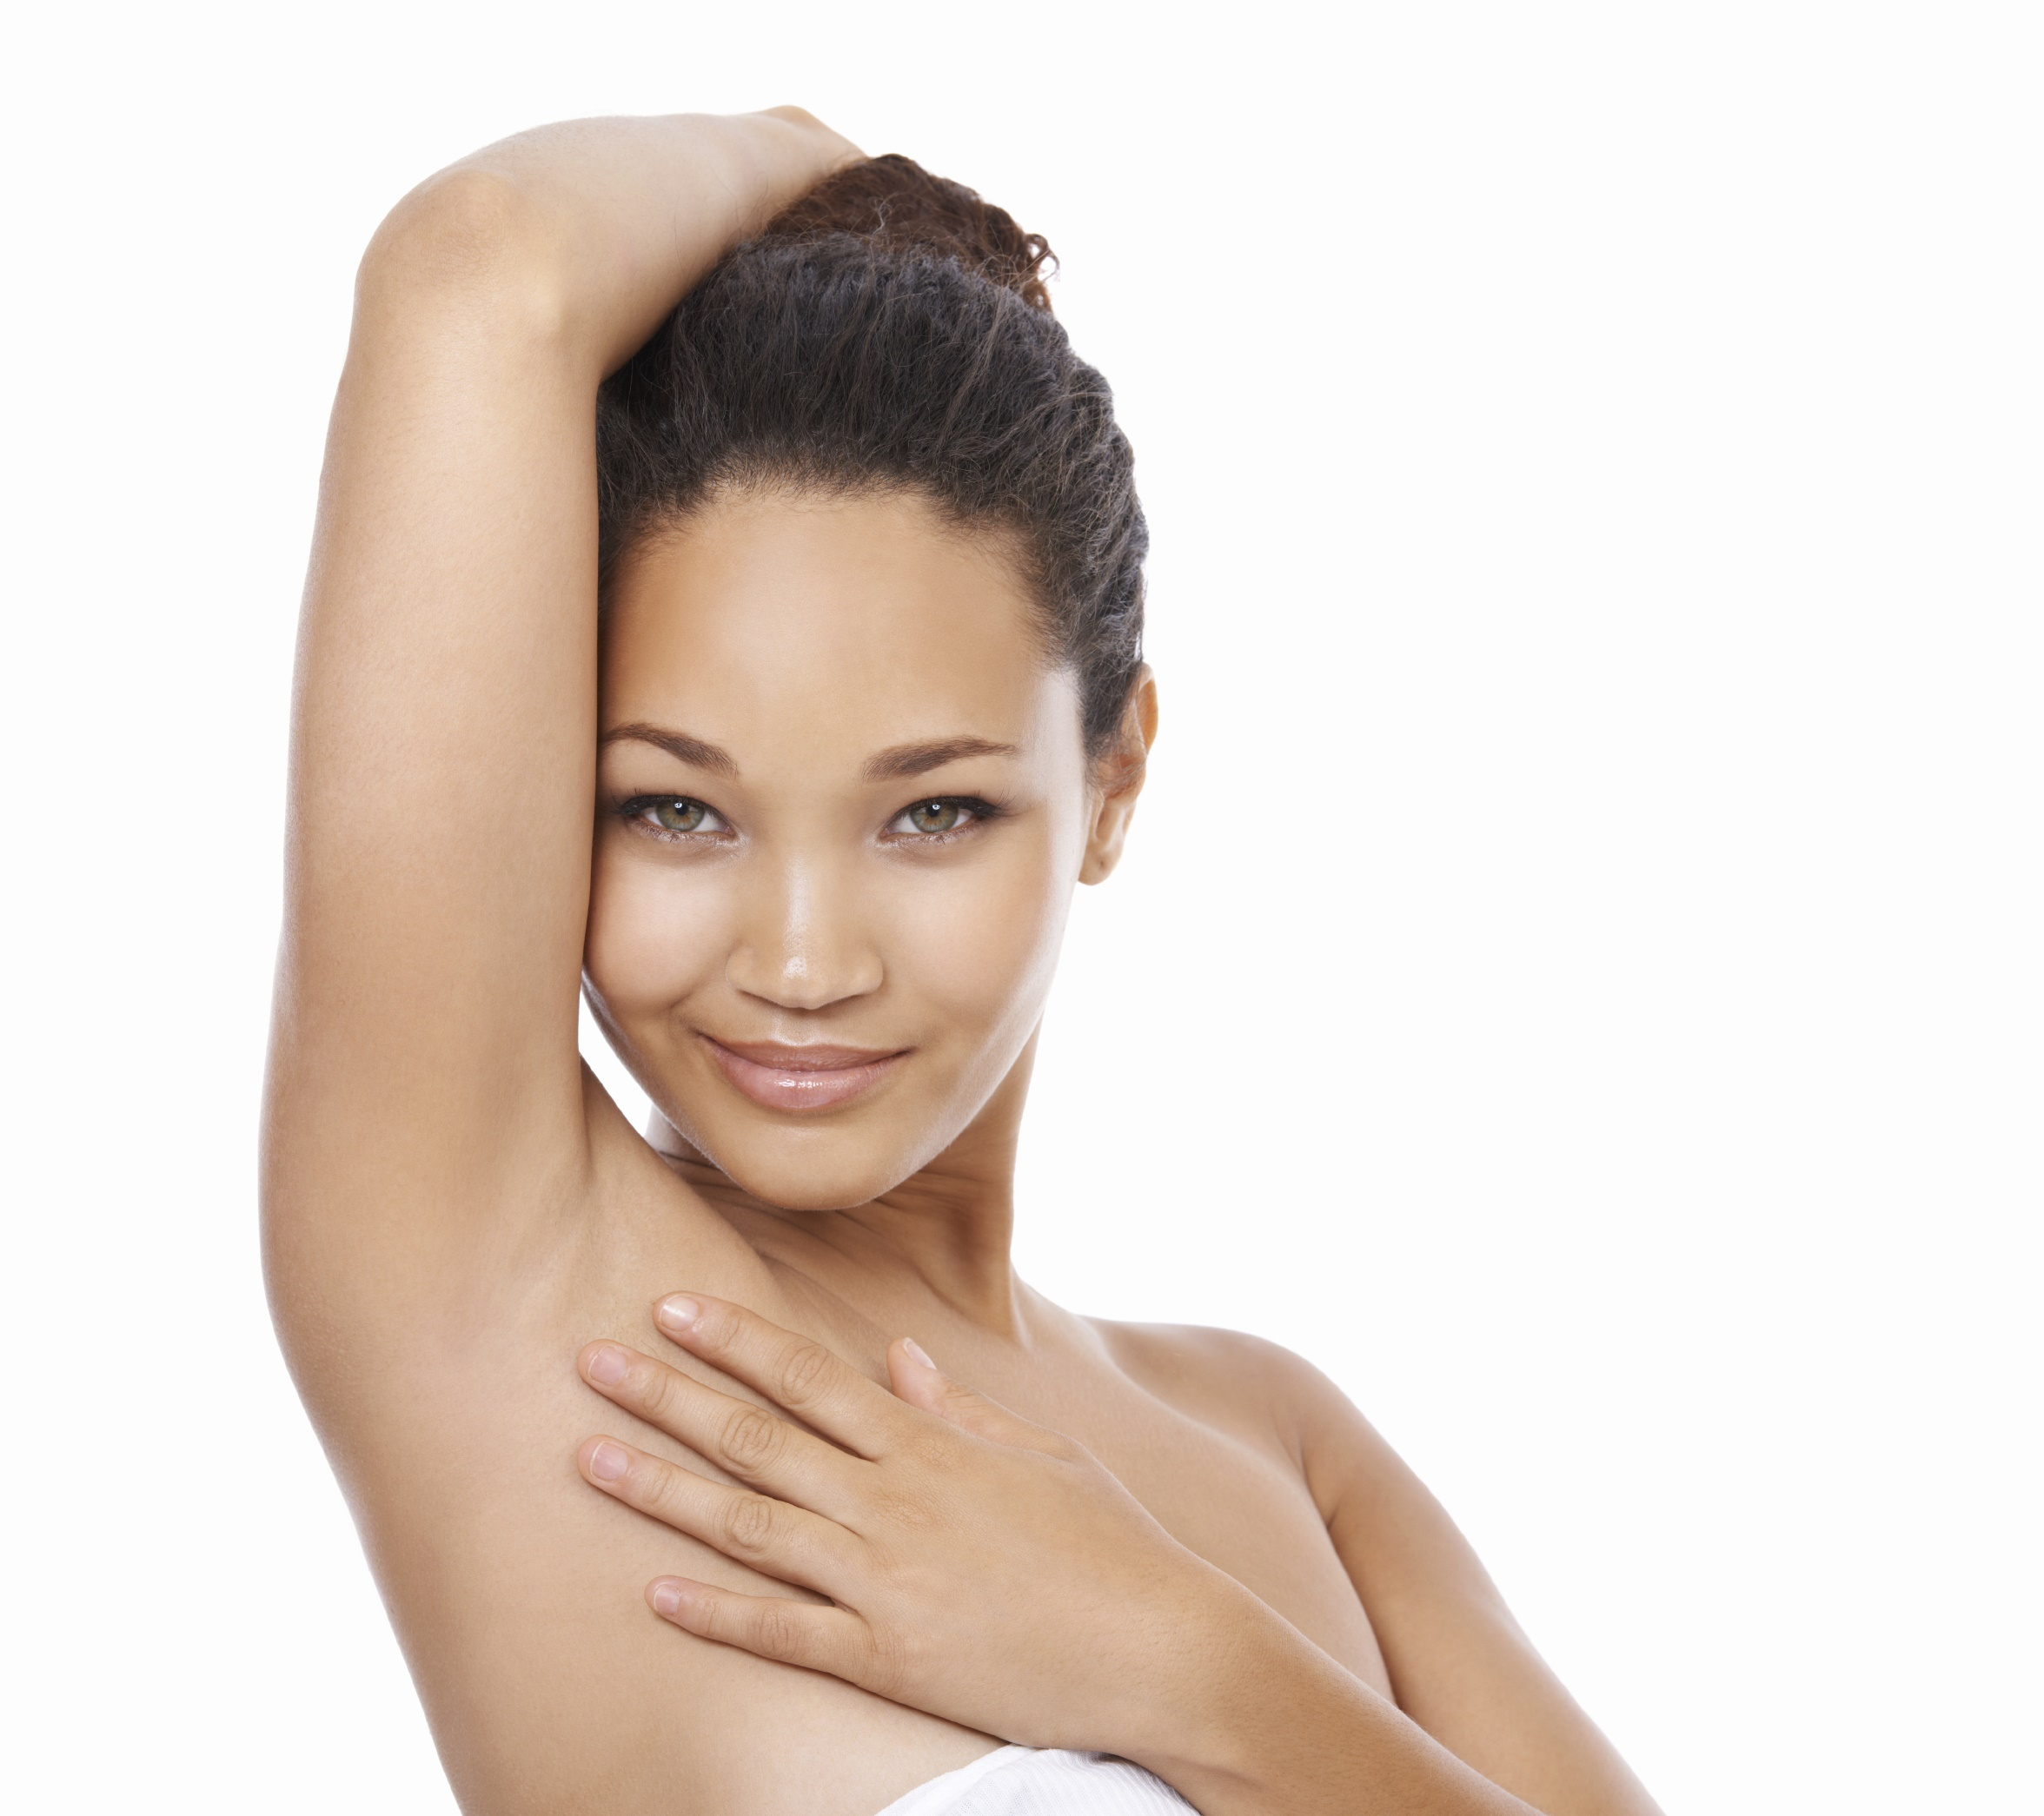 12 Natural Ways To Get Rid Of Underarm Hair